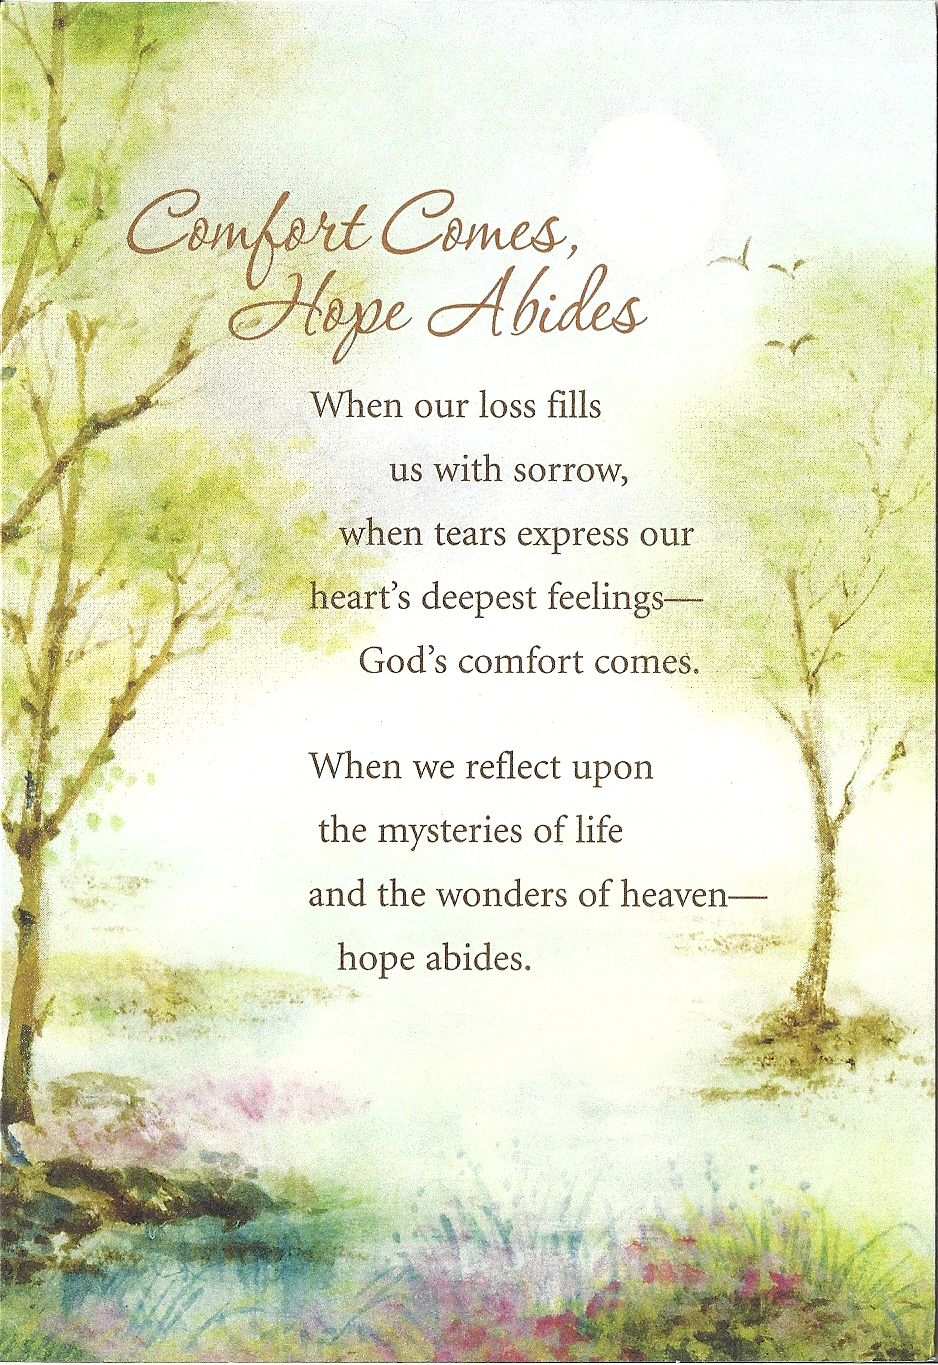 Condolences For Loss Of Mother - Meaningful Sympathy Messages